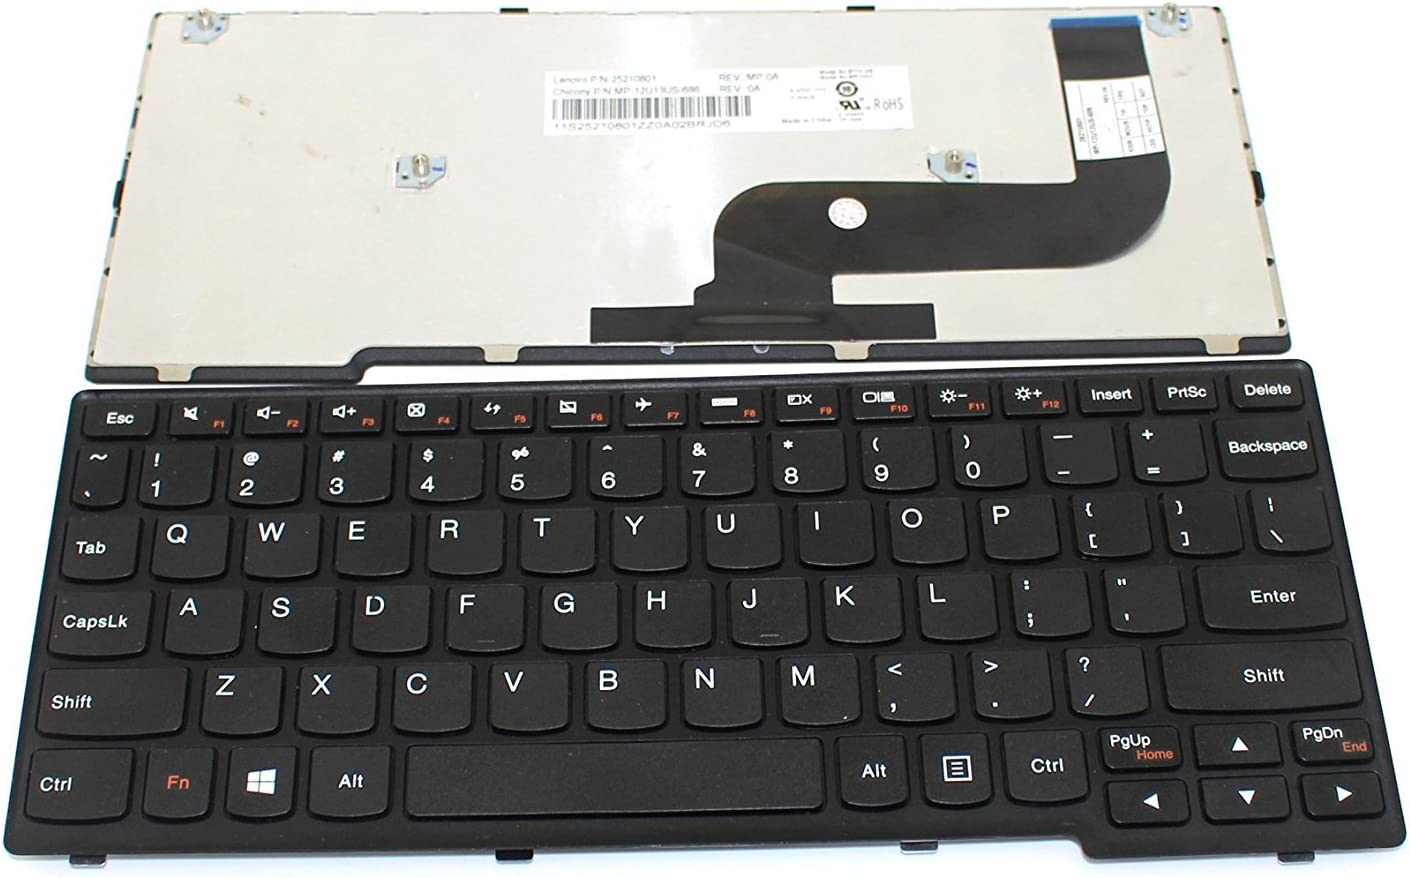 New Laptop Keyboard Replacement for IBM Lenovo Ideapad Yoga 11S Yoga11S Yoga11S-ITH Yoga11S-IFI P/N:25210861, 11S25210831 US US Black Color